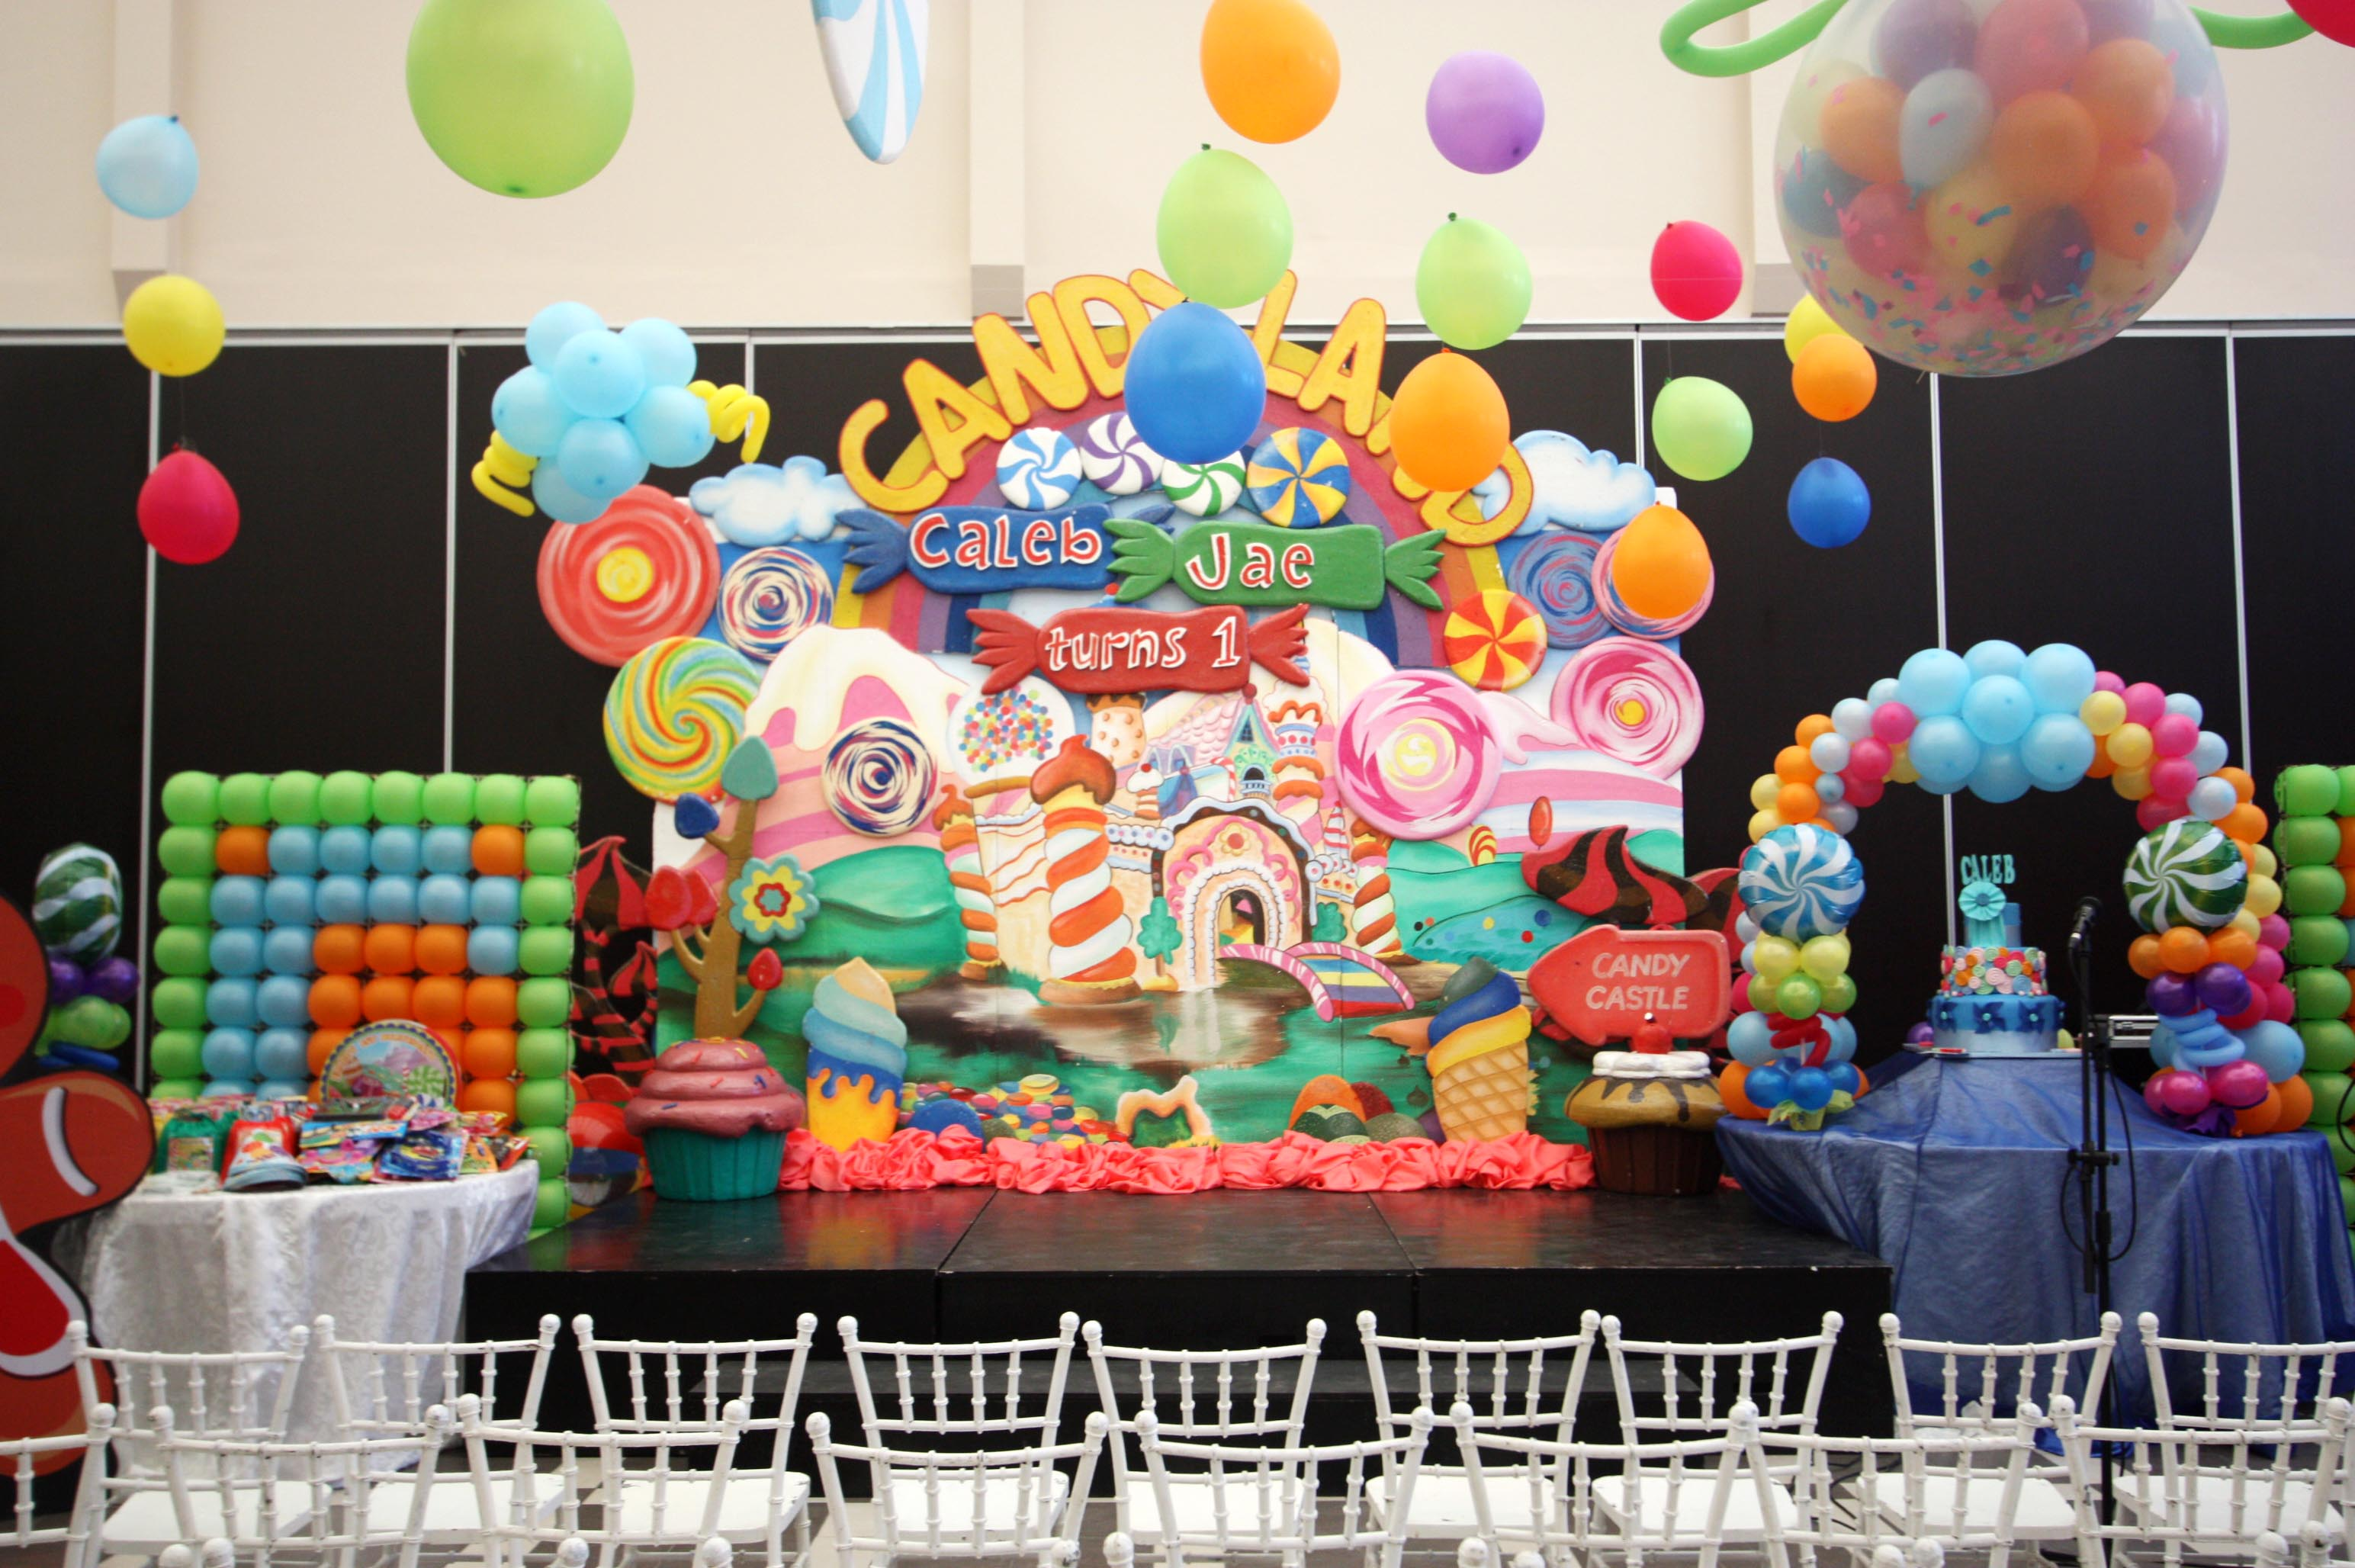 Caleb S Candyland Birthday Hanging Gardens Events Venue